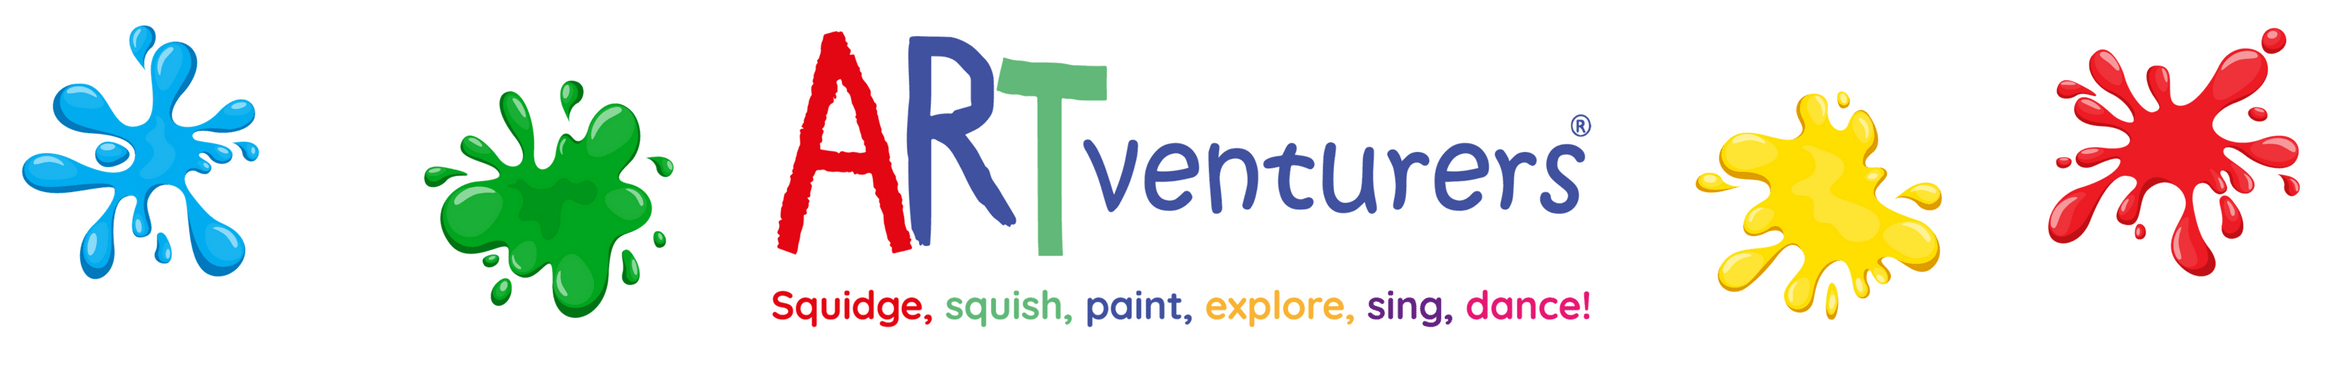 ARTventurers North Hampshire and Bracknell Forest